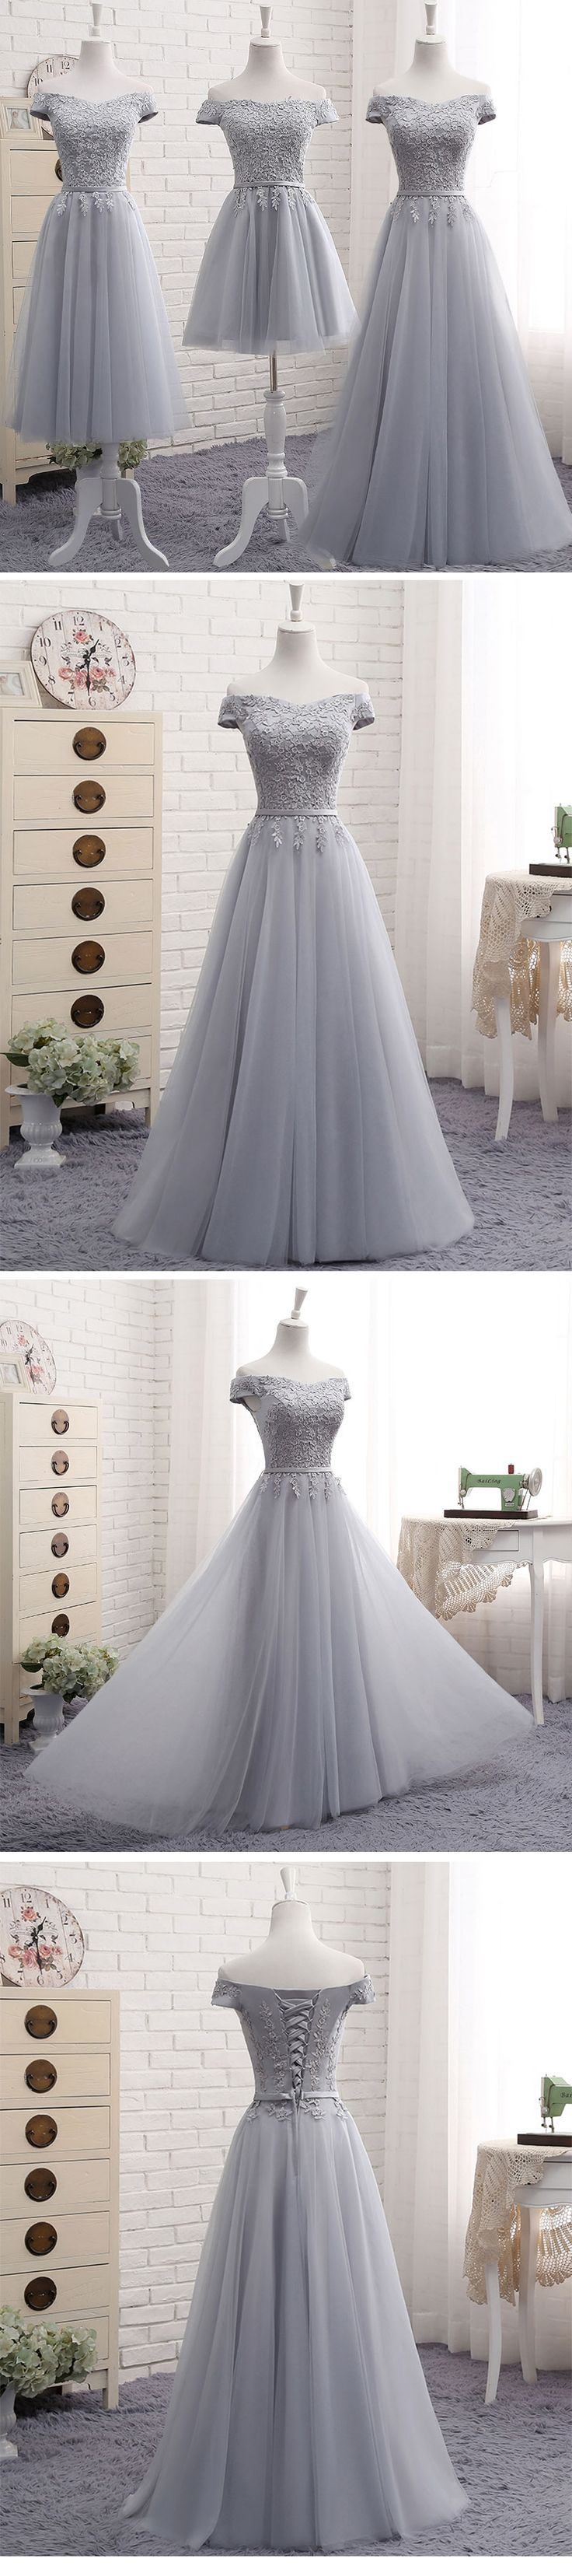 of girl   Cute a line gray lace off shoulder prom dress, lace evening dresses   Online Store Powered by Storenvy